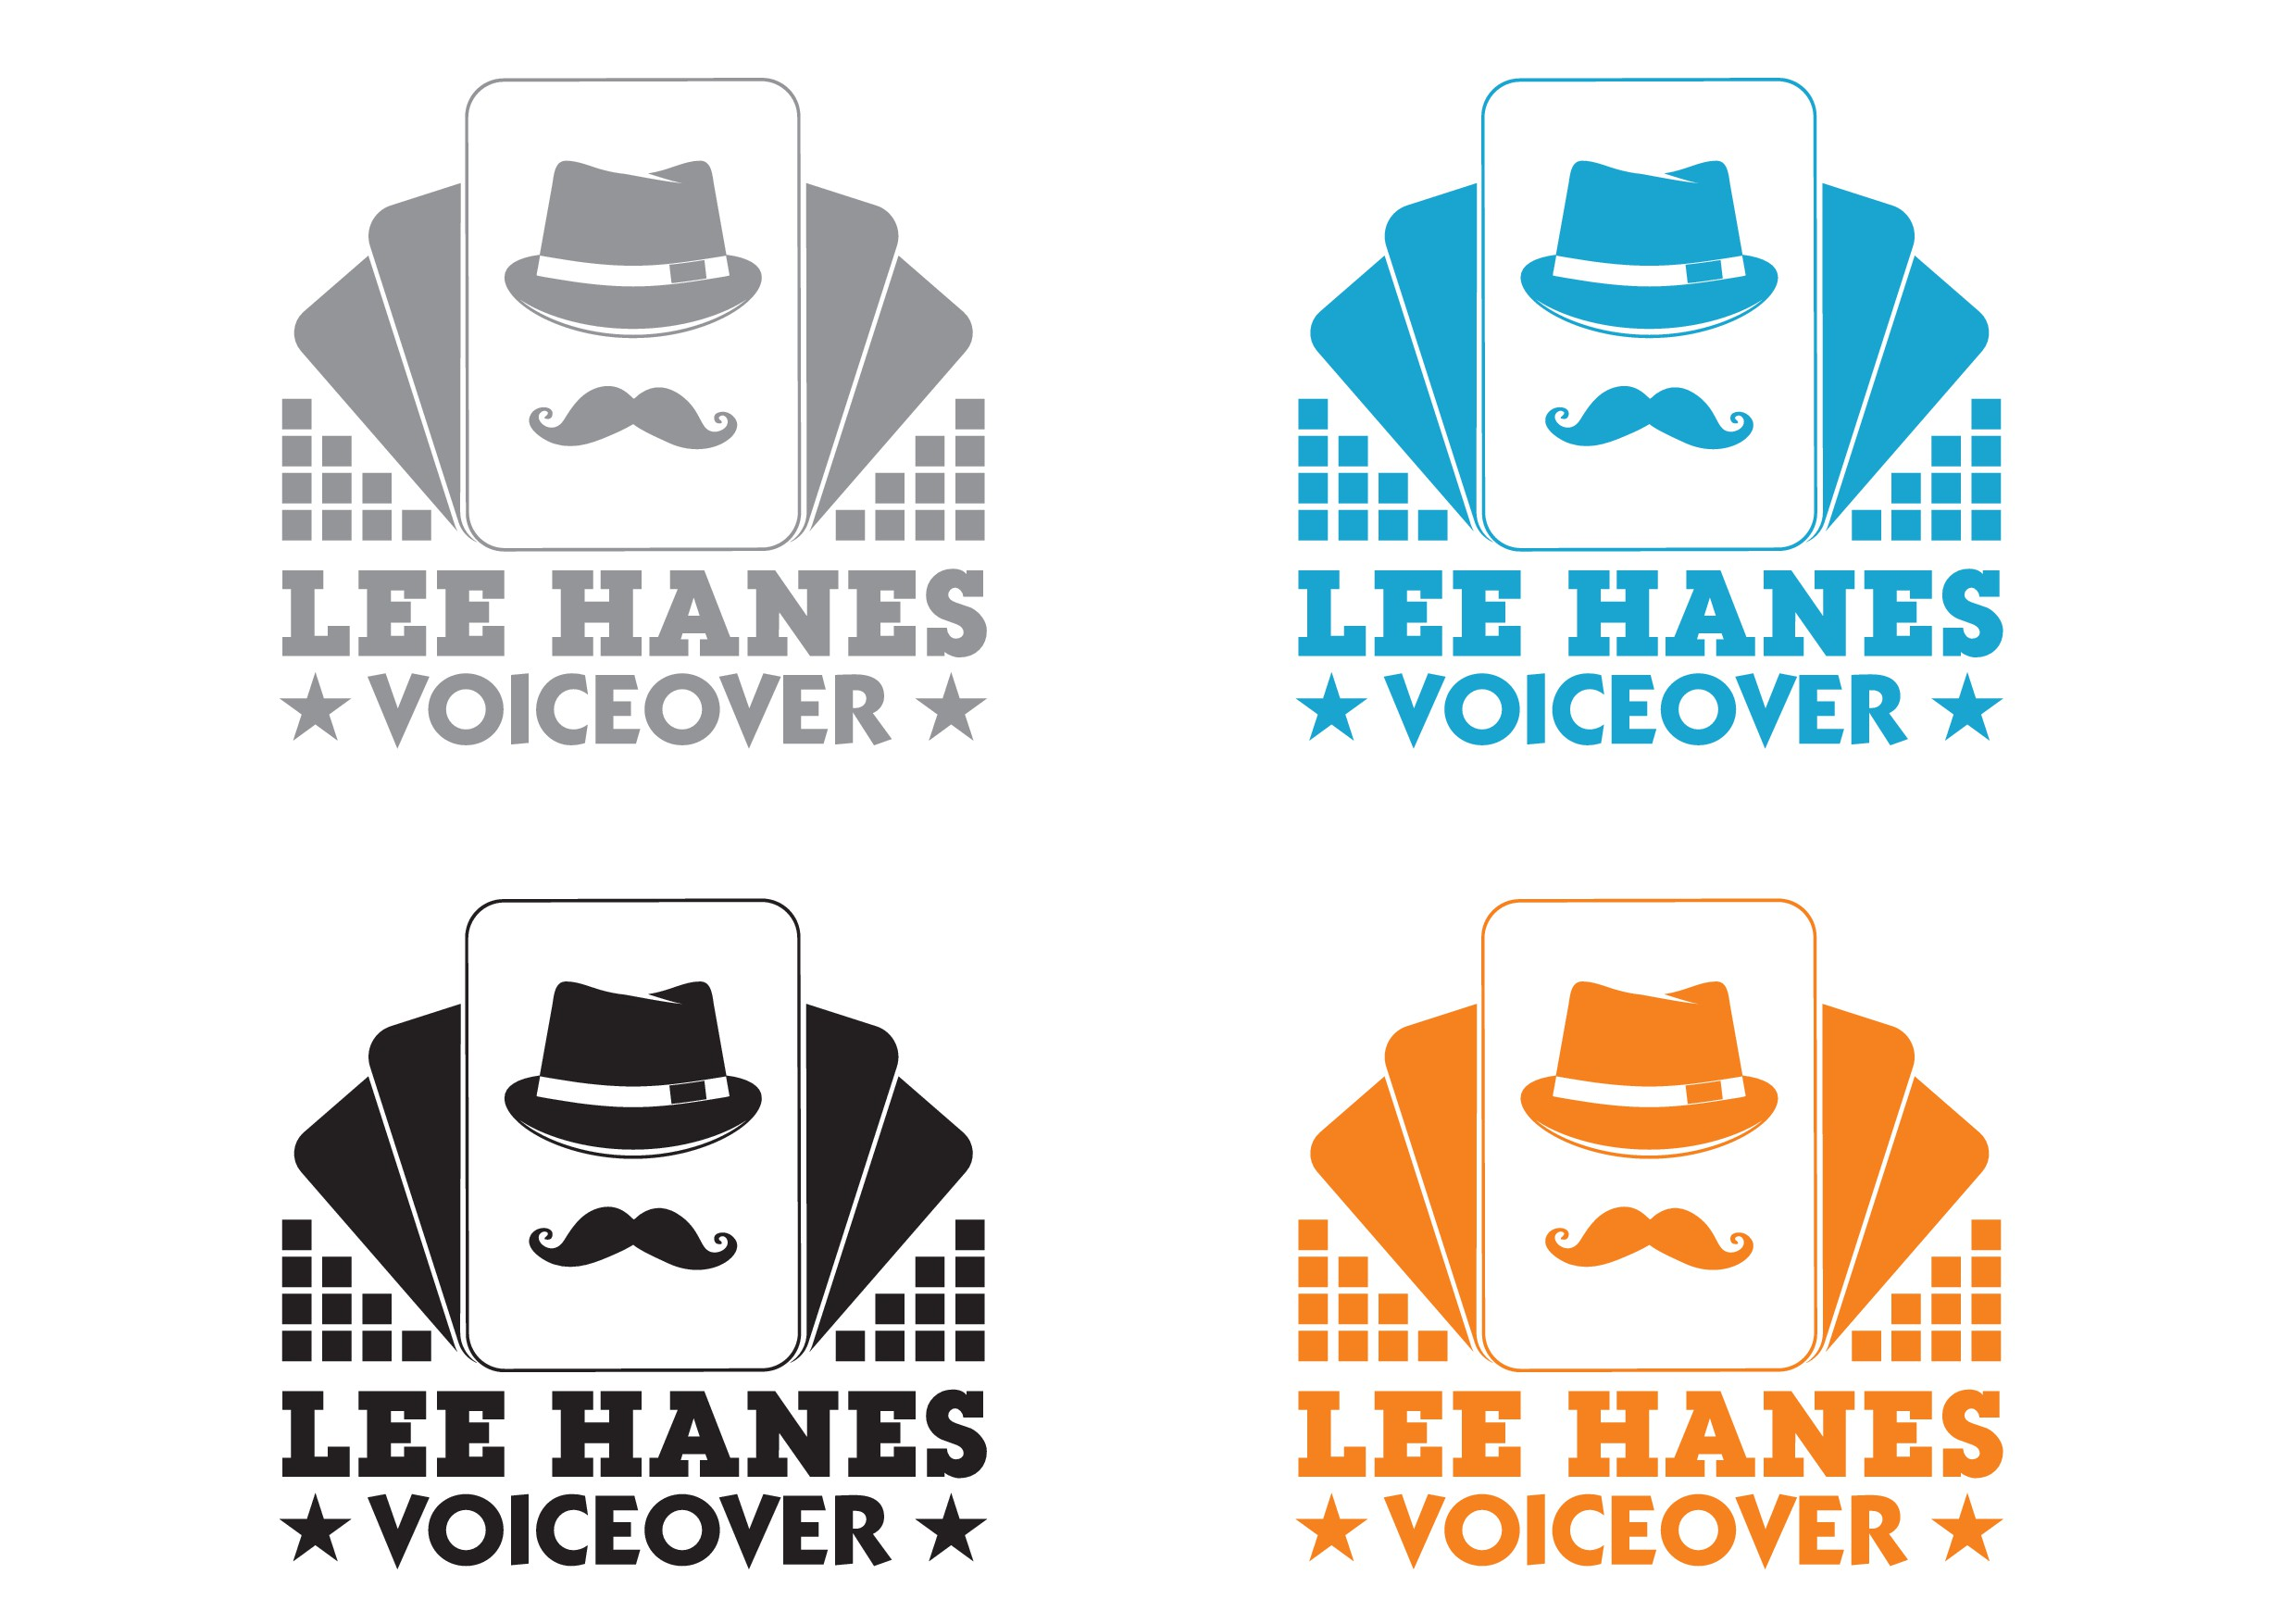 Capture the essence of voiceover in a logo